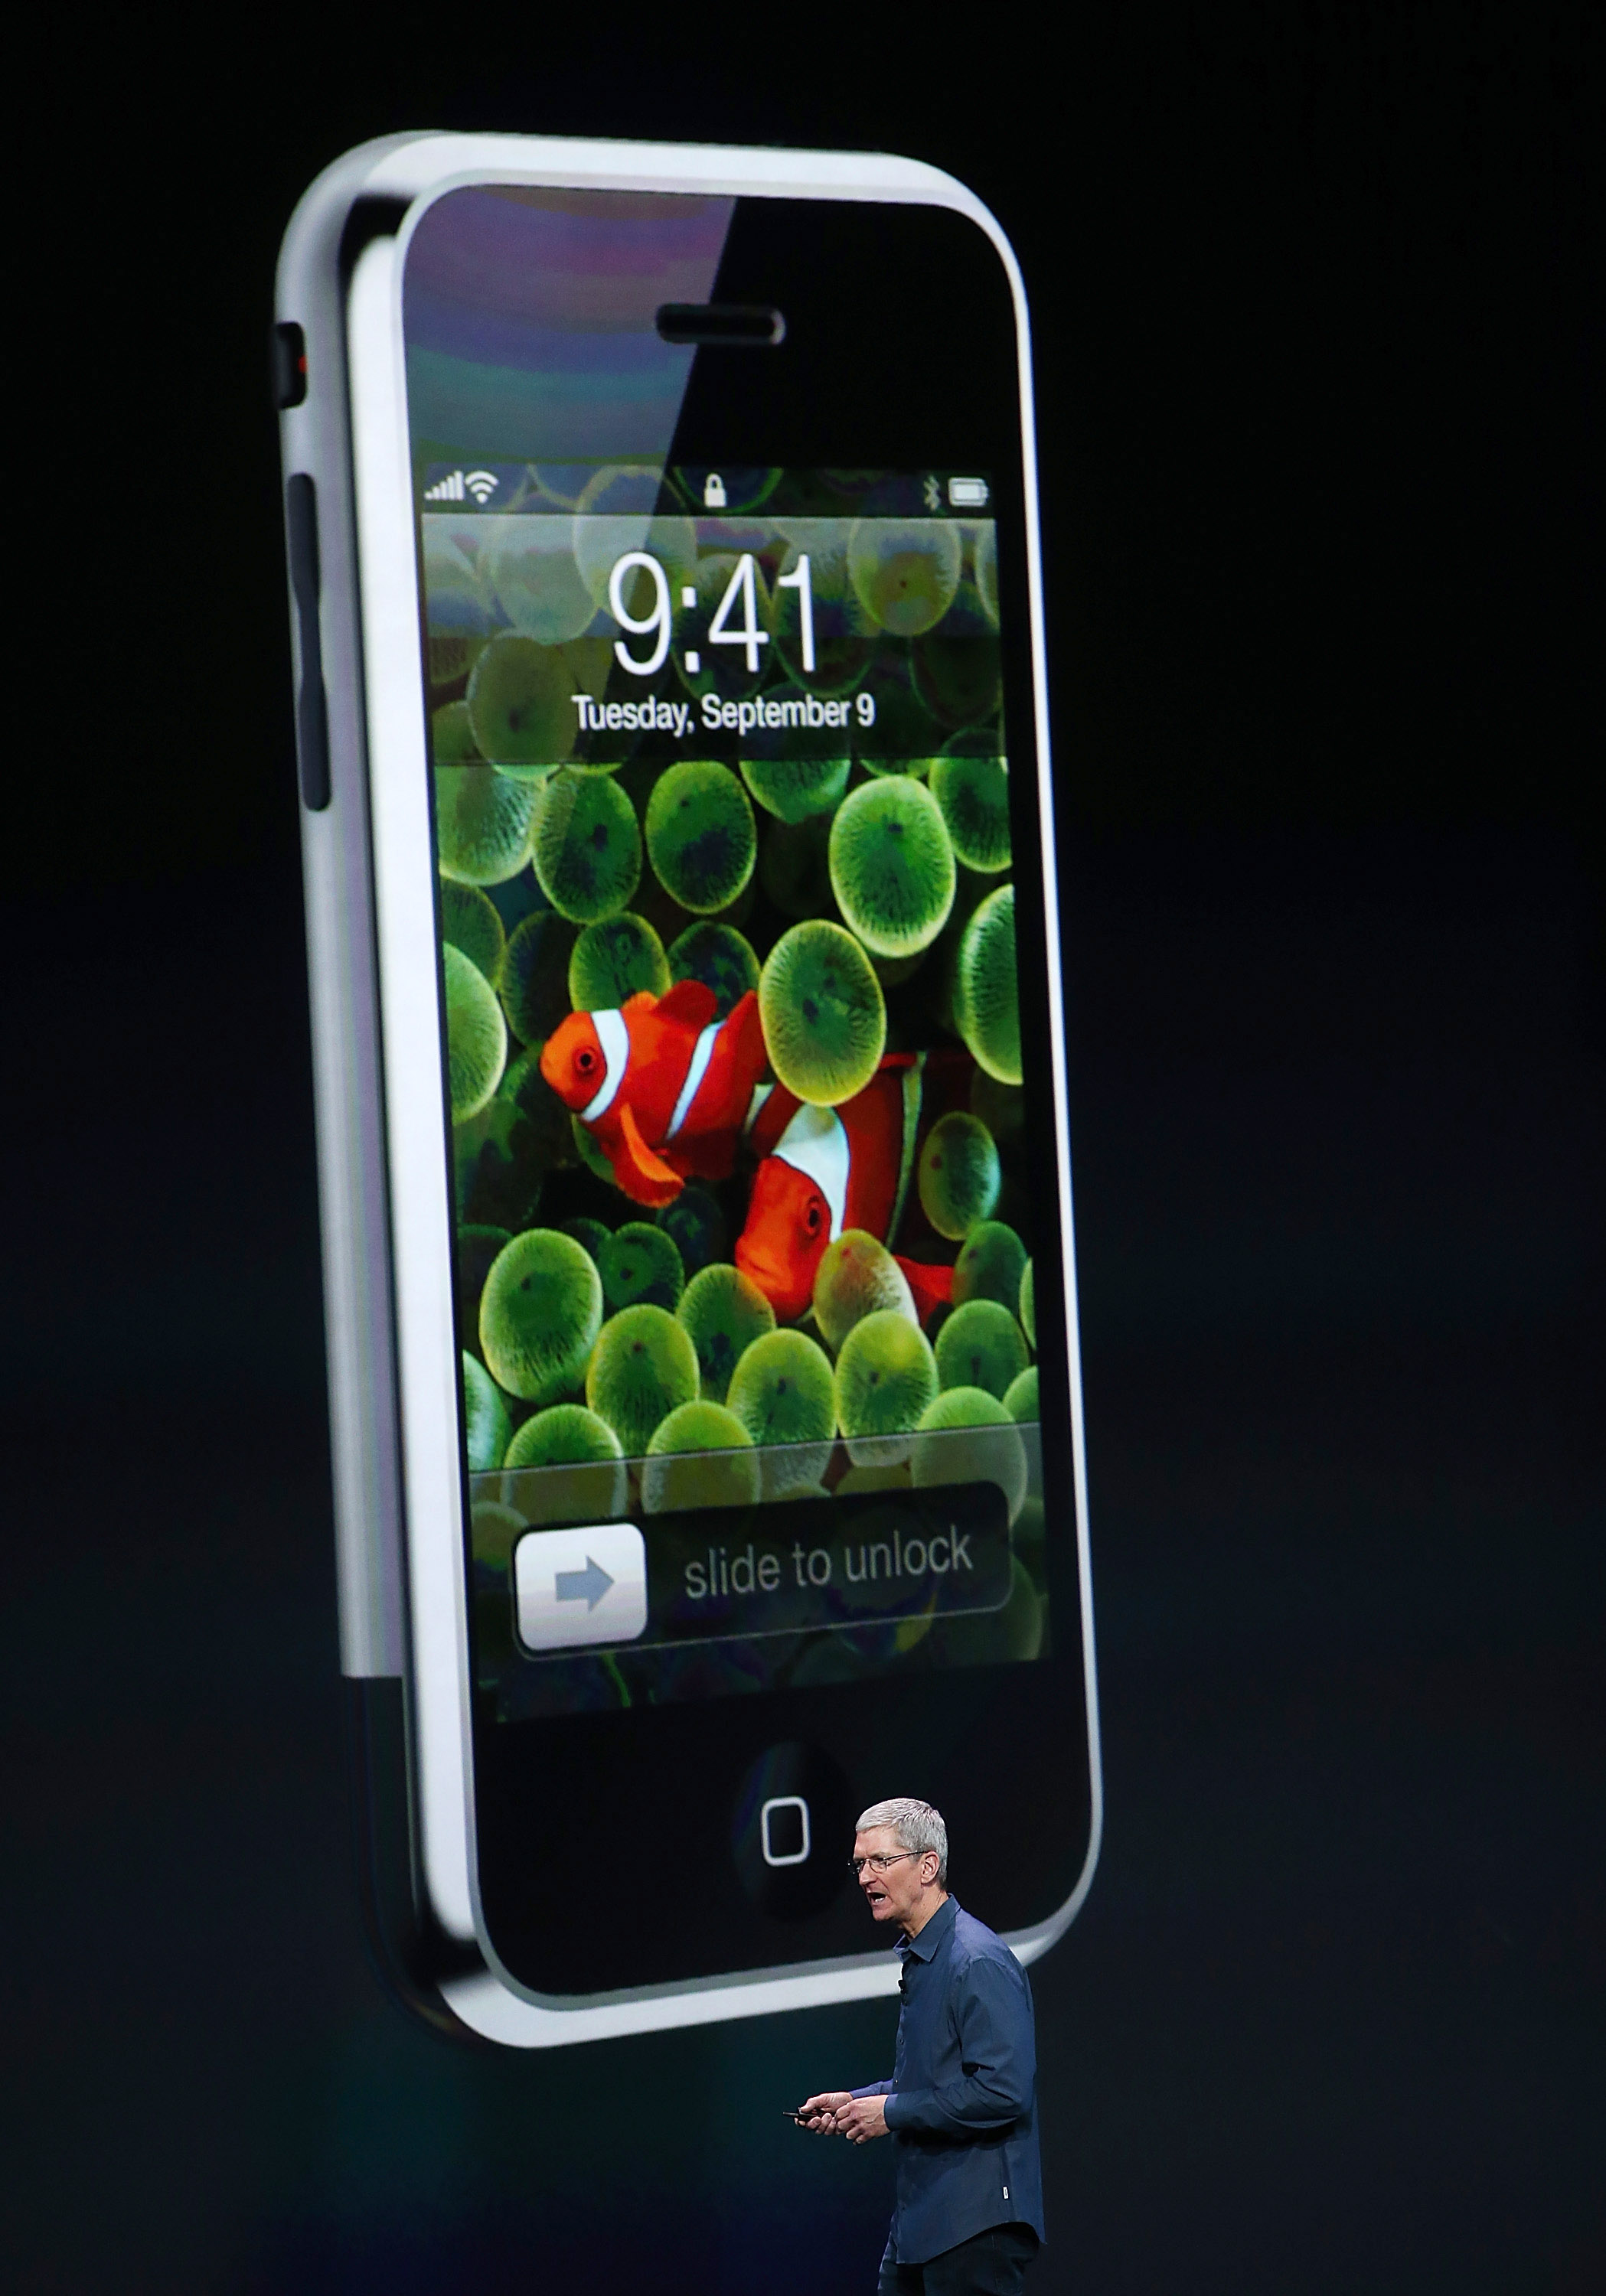 iphone, iphone 6, apple, apple keynote, iphone 6 event, iphone photos, iphone 6 plus, iphone pictures, new iphone